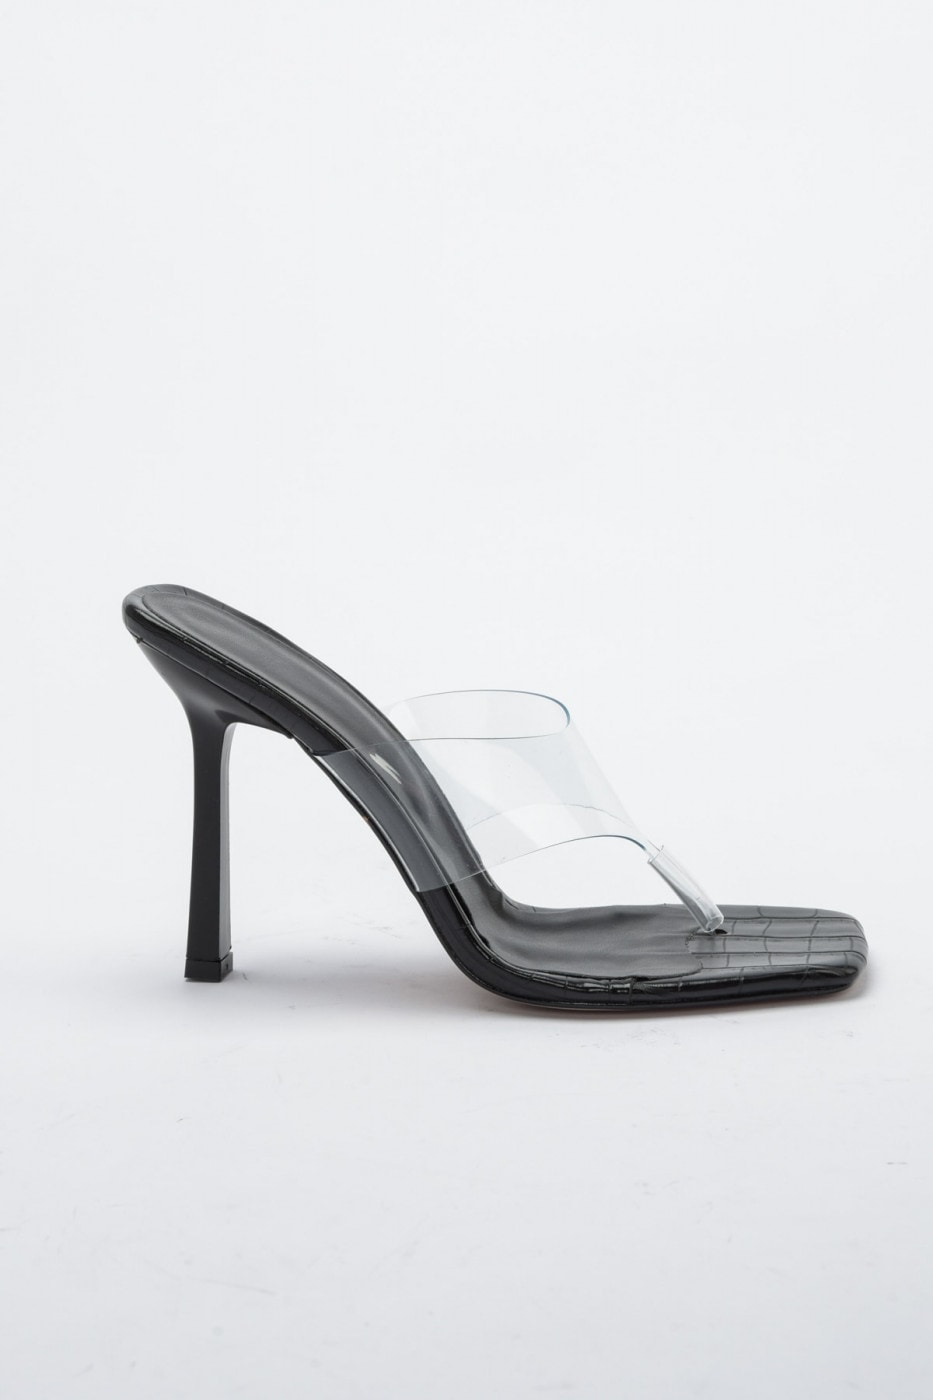 Trendyol Black Kroko Detailed Transparent Women's Classic Heels